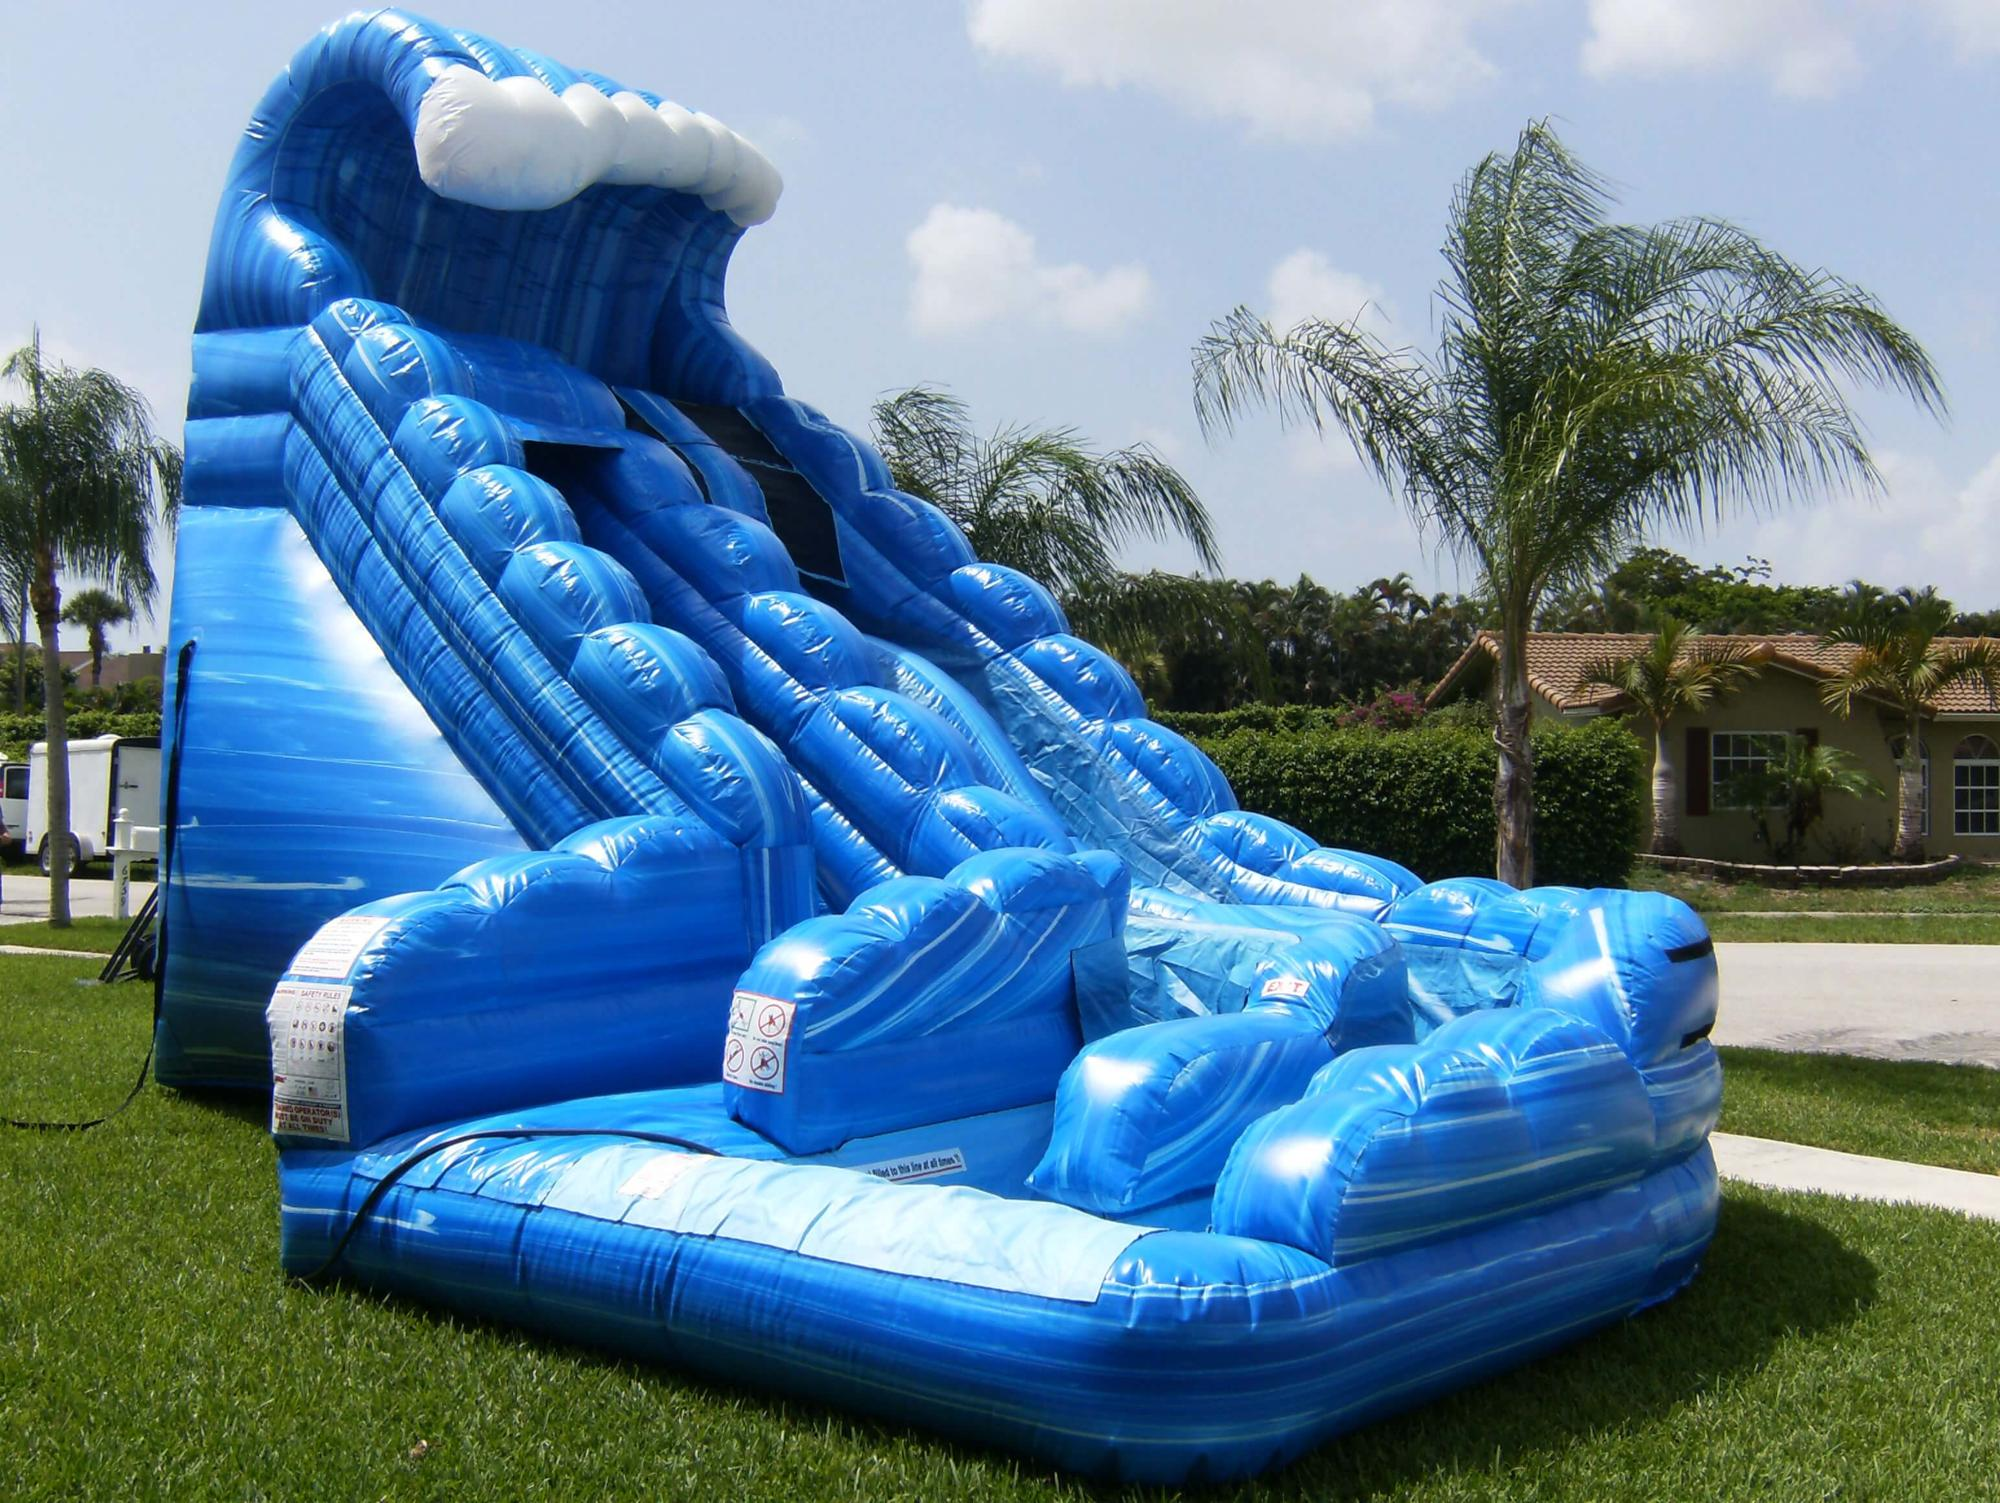 Popular Water Park Used Dolphin Dive Waterslide,Big Kahuna Inflatable Water  Slide,Commercial Giant Inflatable Water Slide - Buy Dolphin Dive